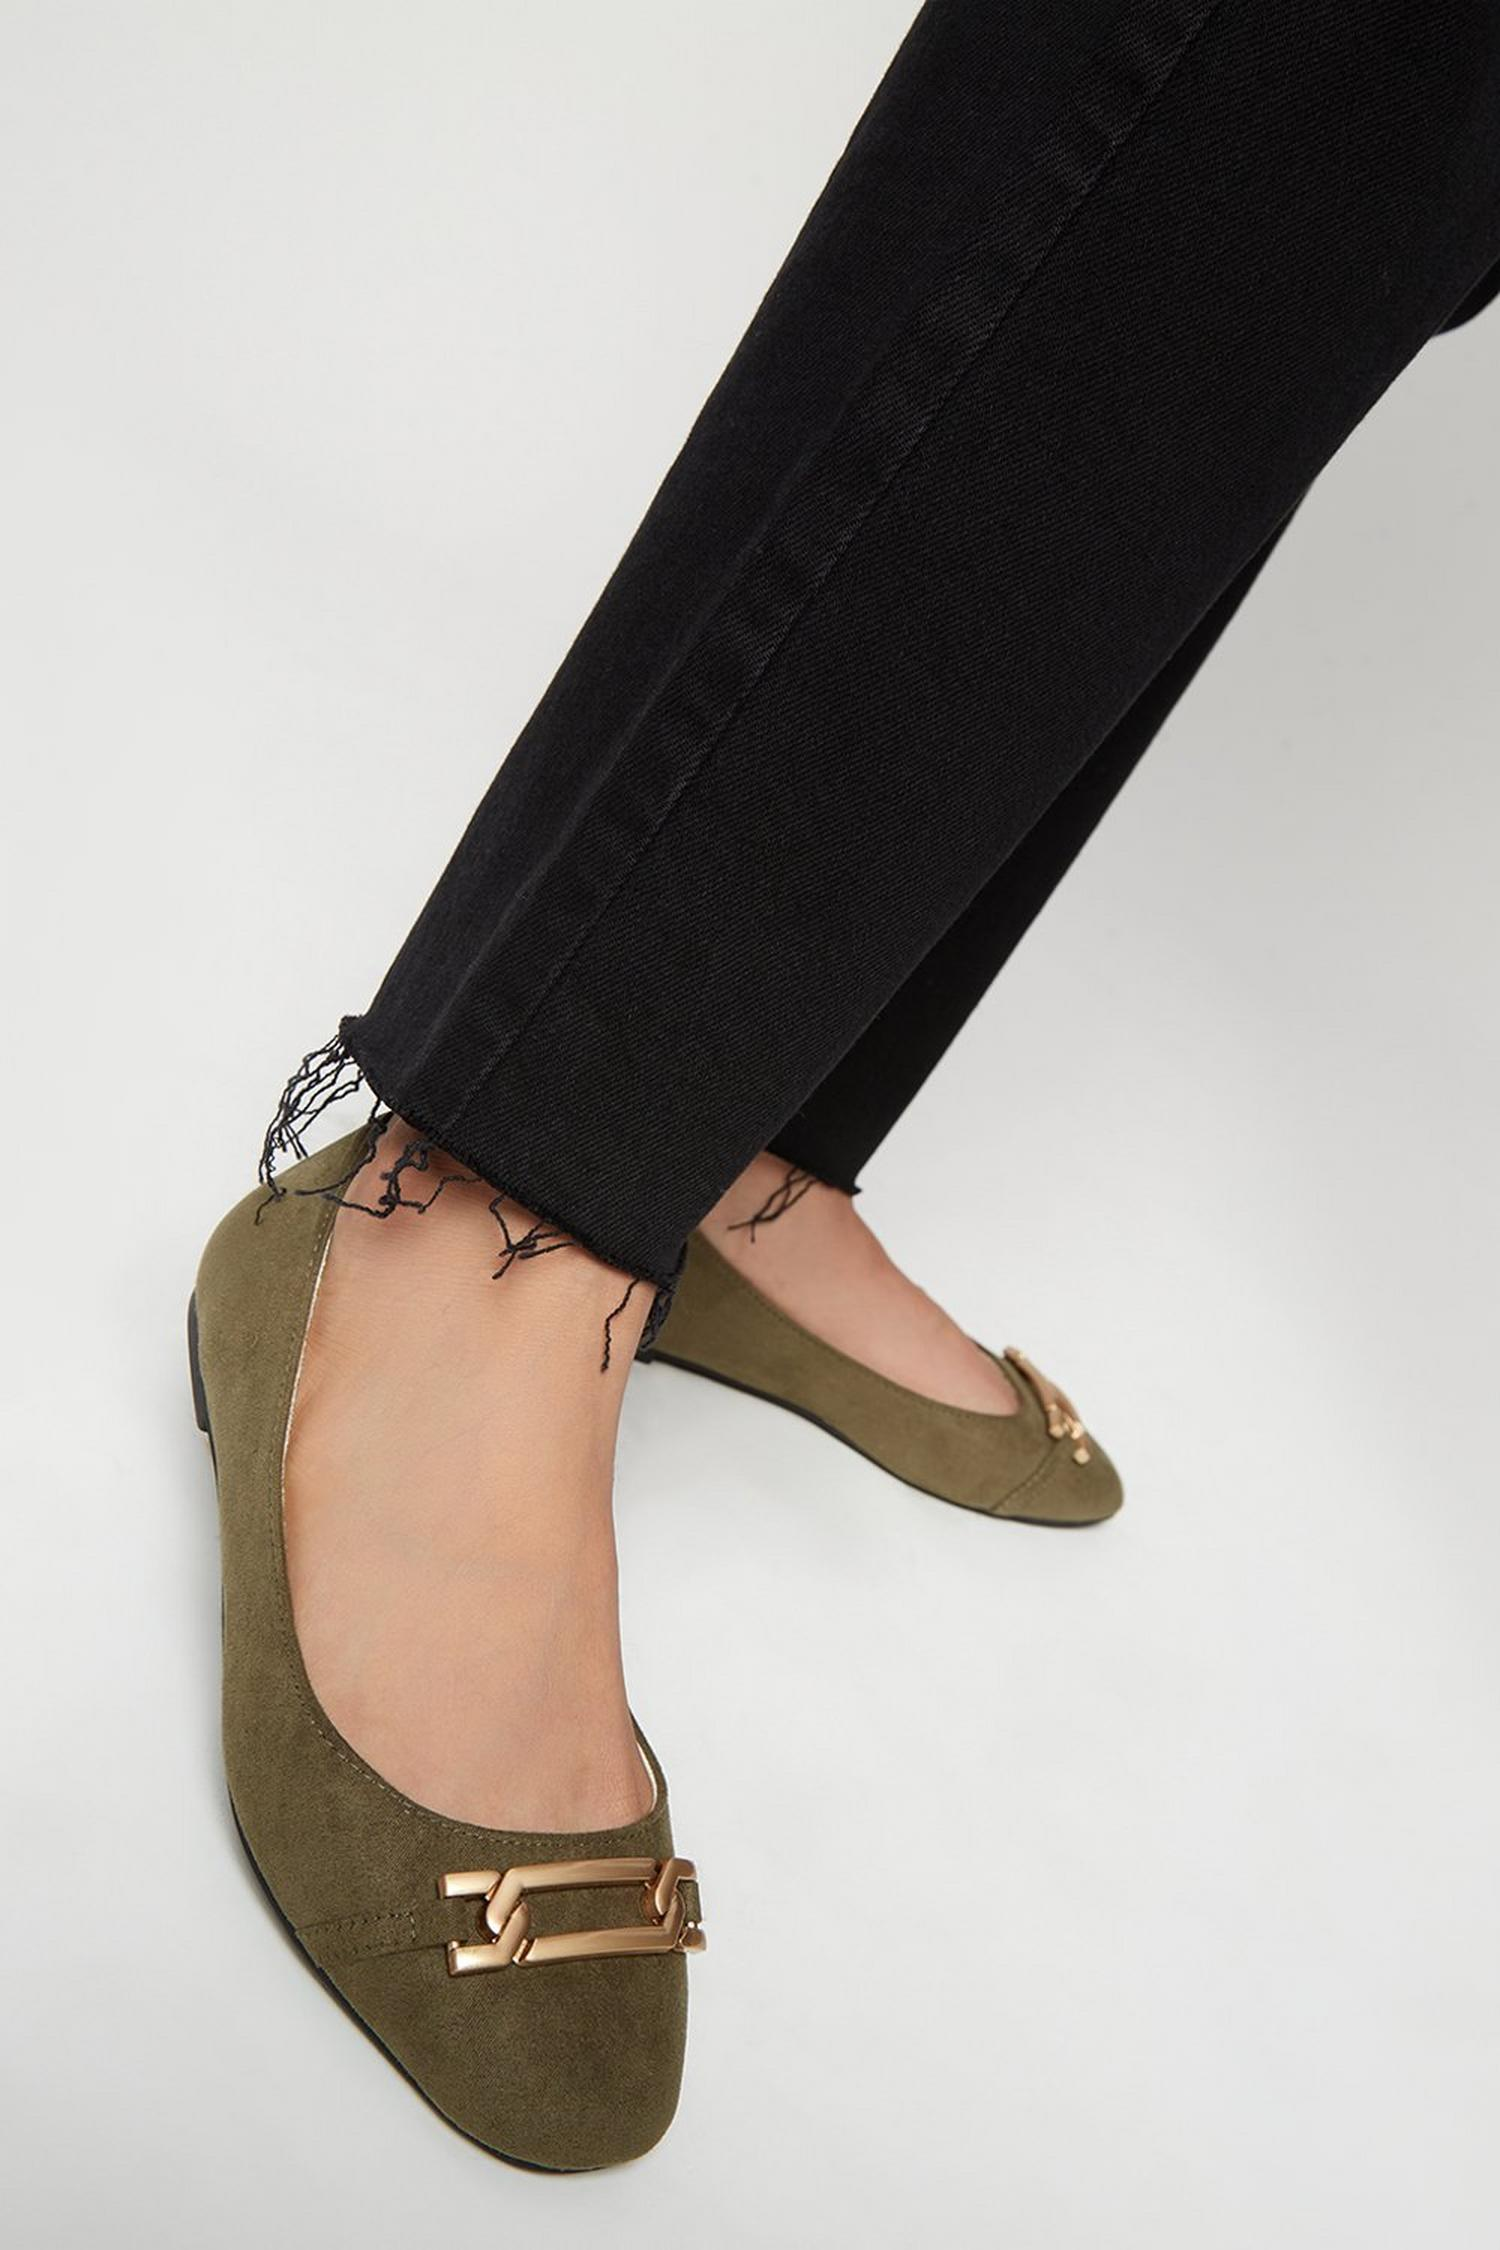 511 Wide Fit Olive Pinch Pumps image number 4